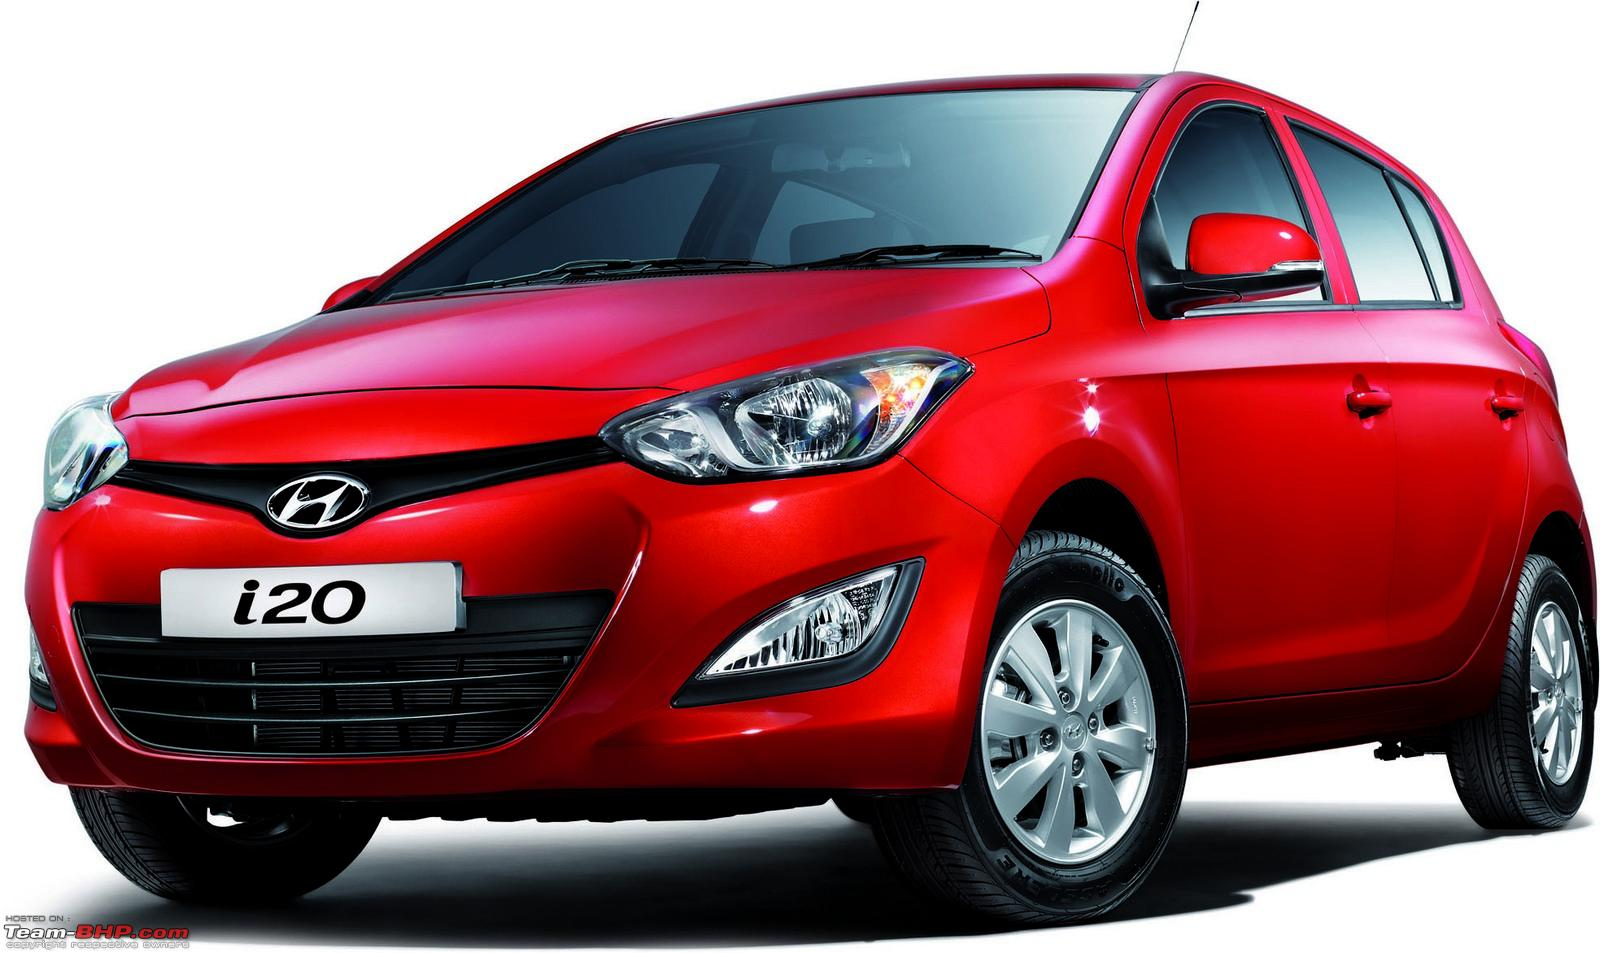 face lifted hyundai i20 i gen launched lakhs team bhp. Black Bedroom Furniture Sets. Home Design Ideas